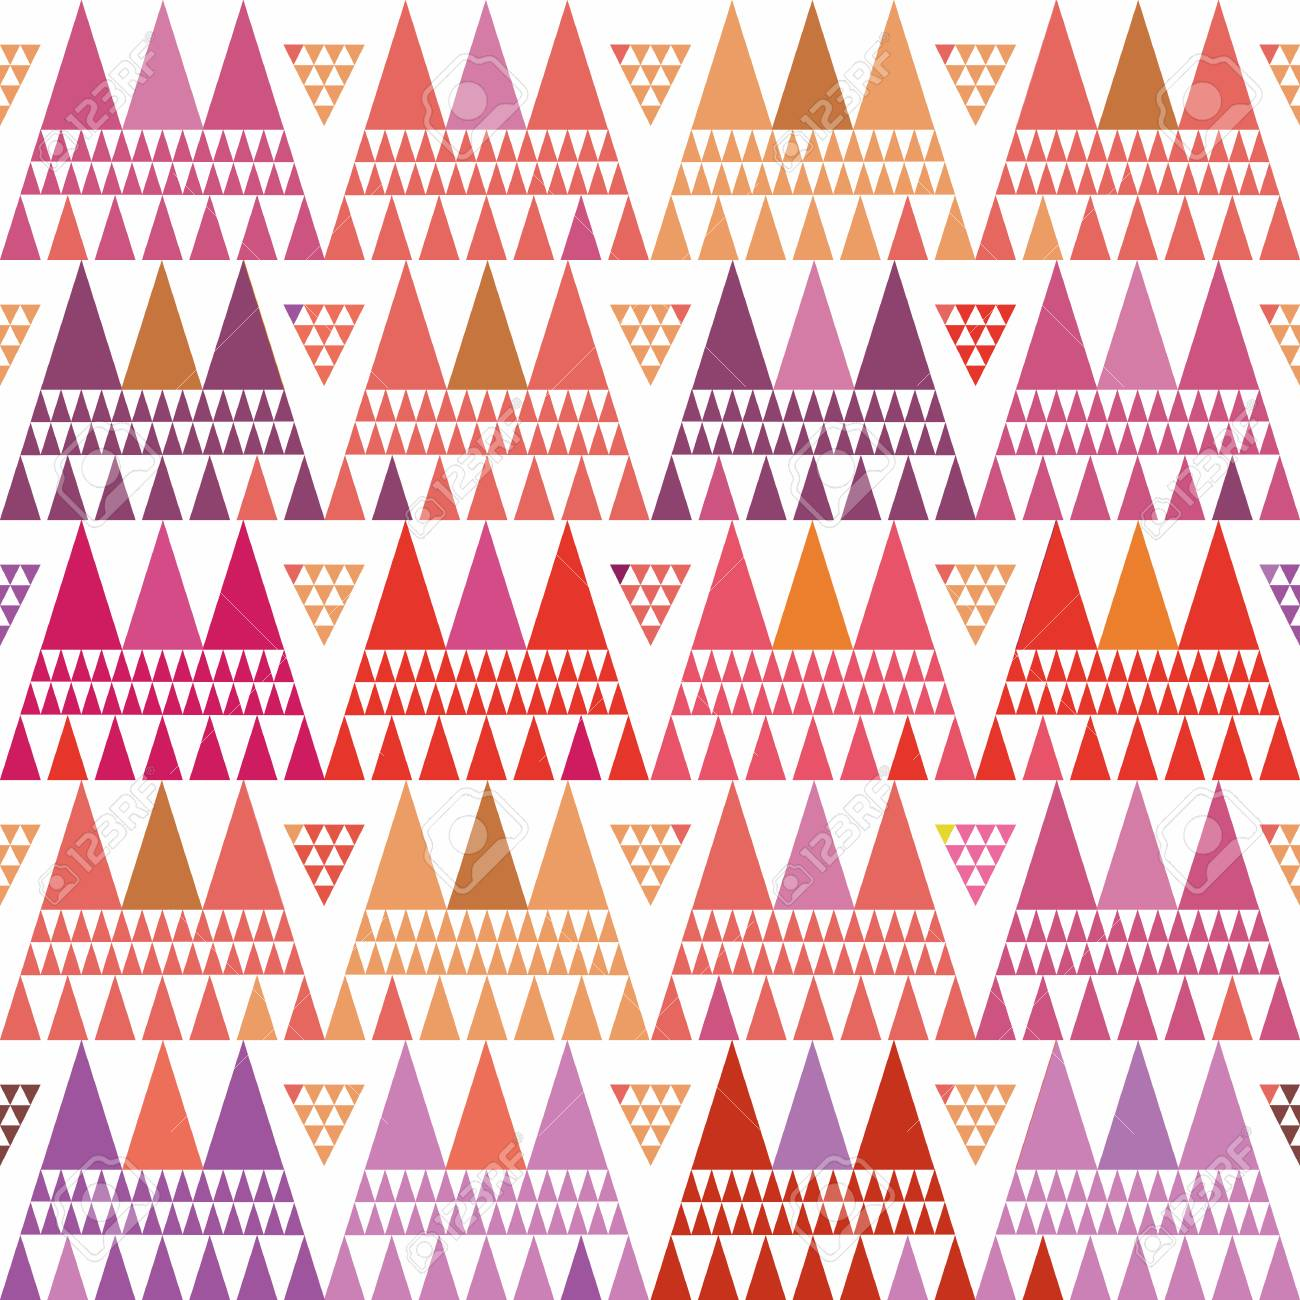 Fresh pink, purple and orange boho style triangle clusters. Repeat vector pattern on white background with summer vibe. Great for wellbeing, yoga, beauty products, gift wrap, stationery, packaging - 118131915